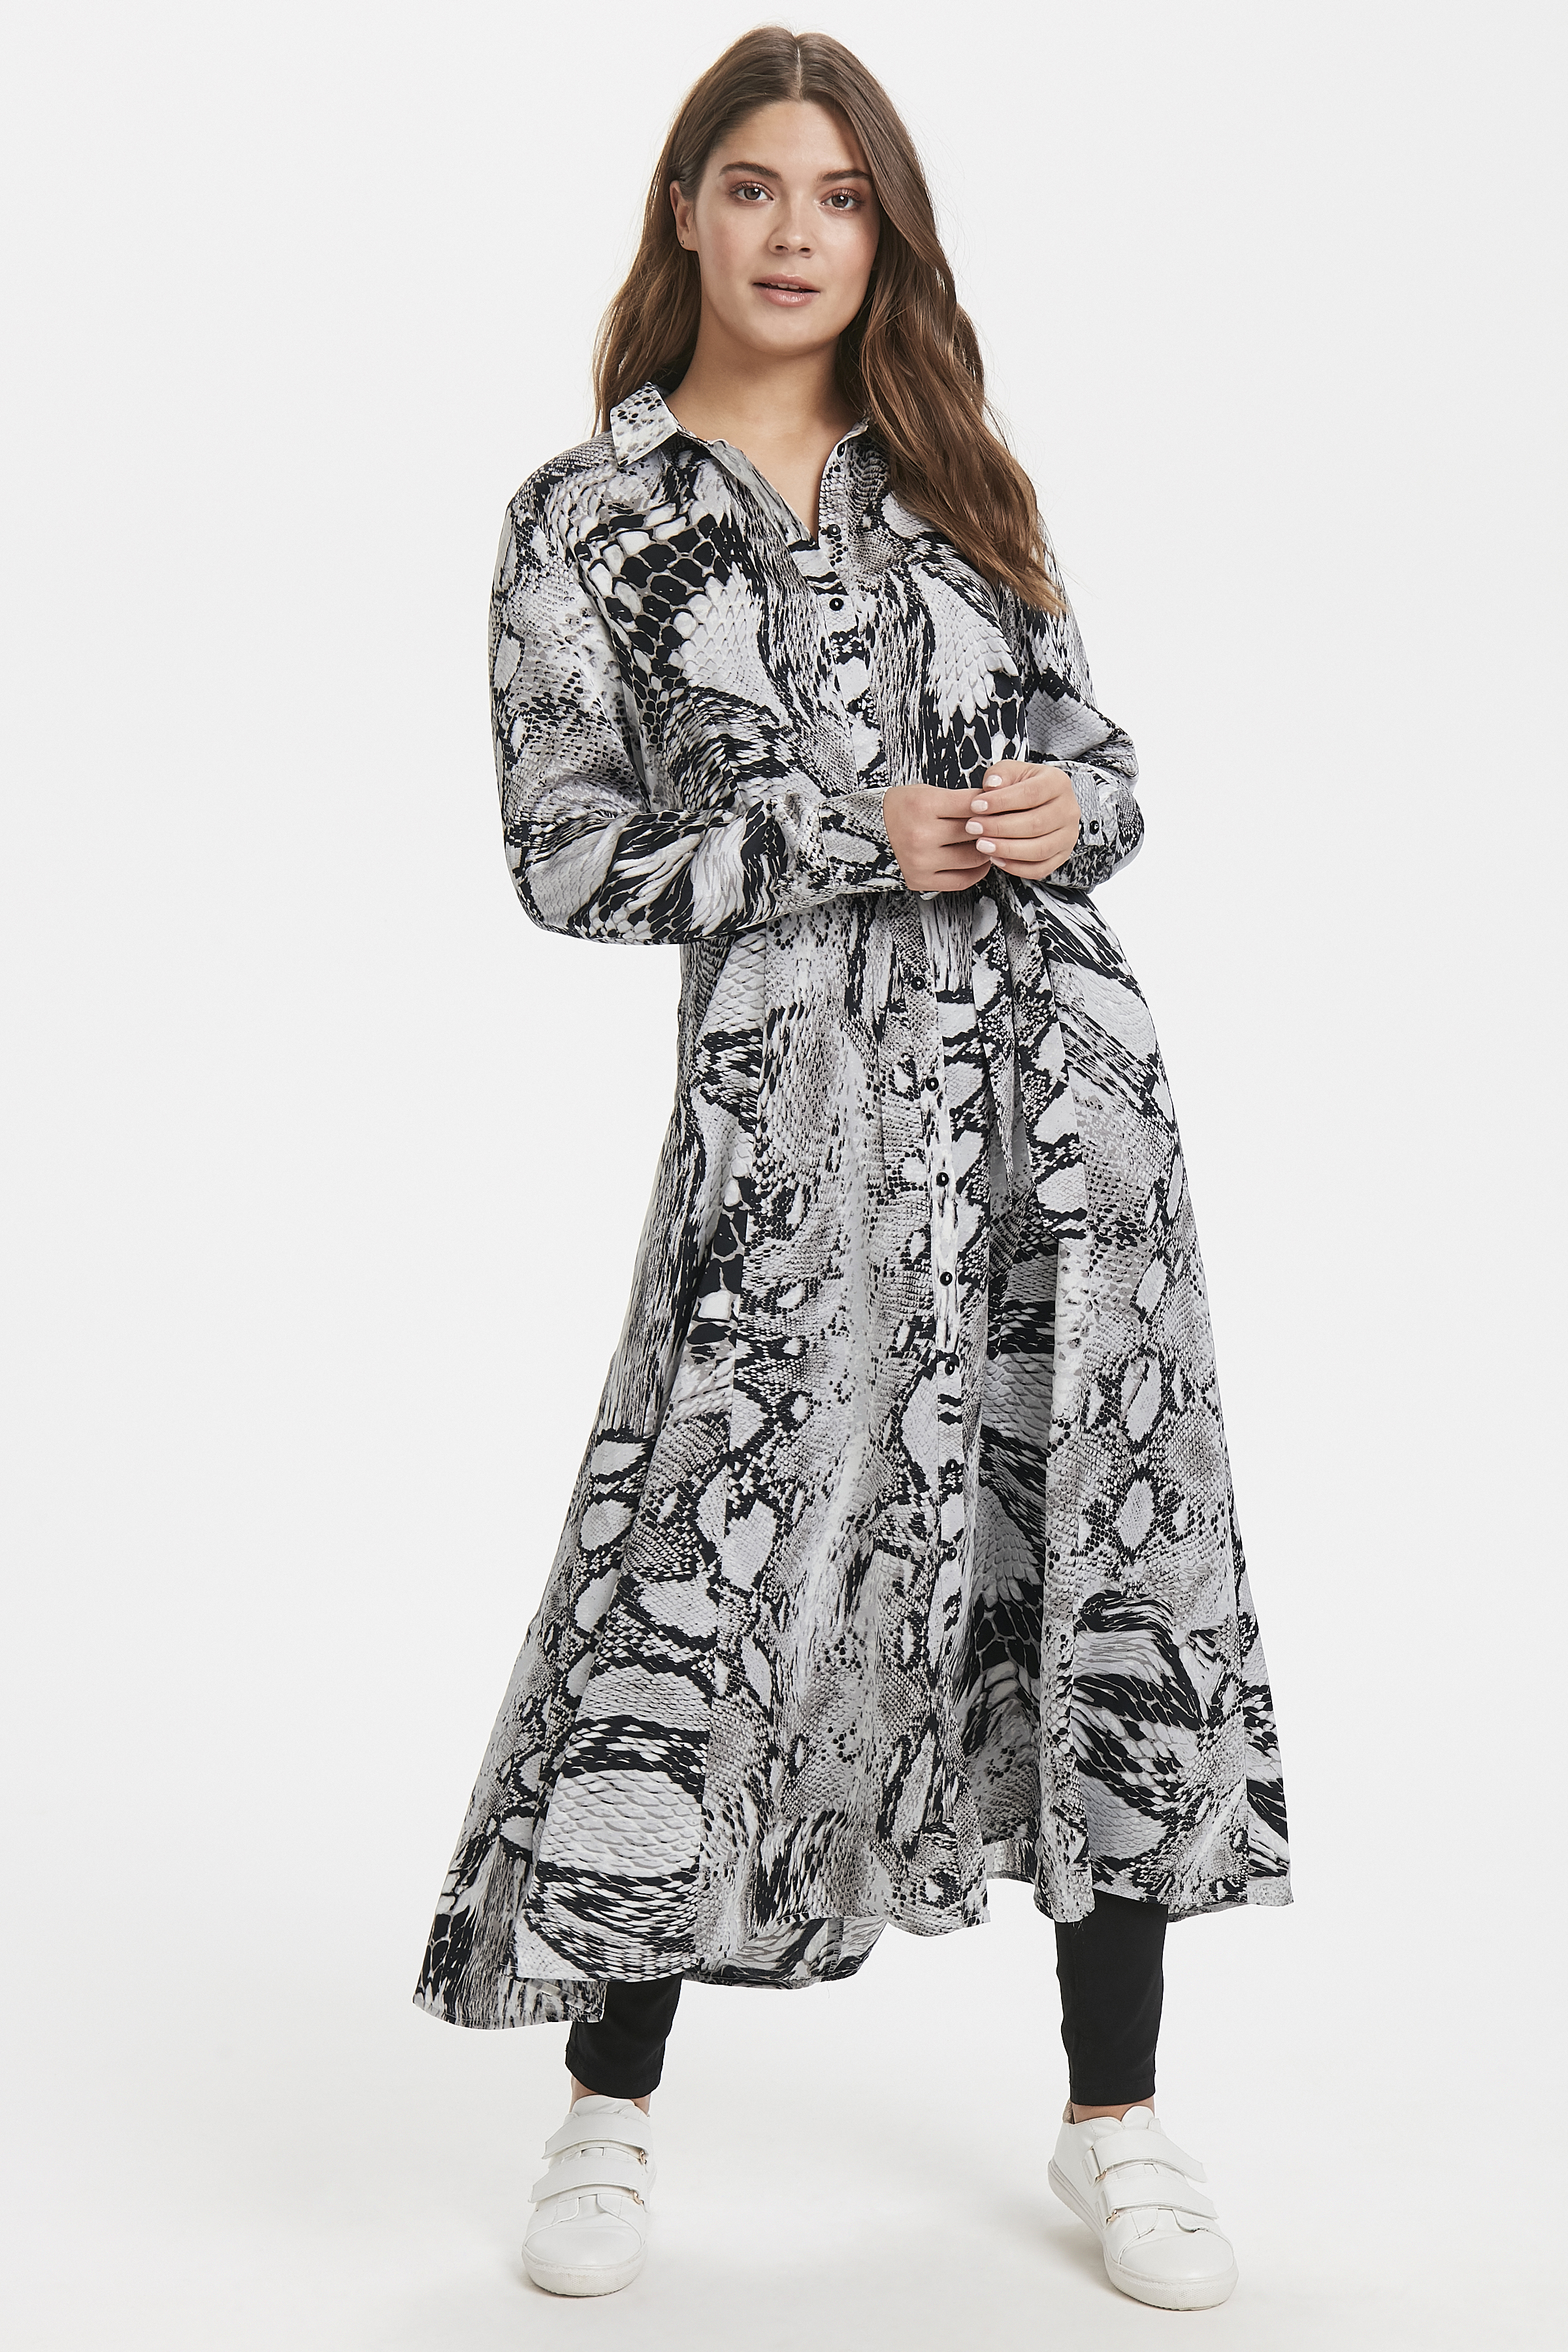 Snake combi 1 Dress from b.young – Buy Snake combi 1 Dress from size 34-42 here